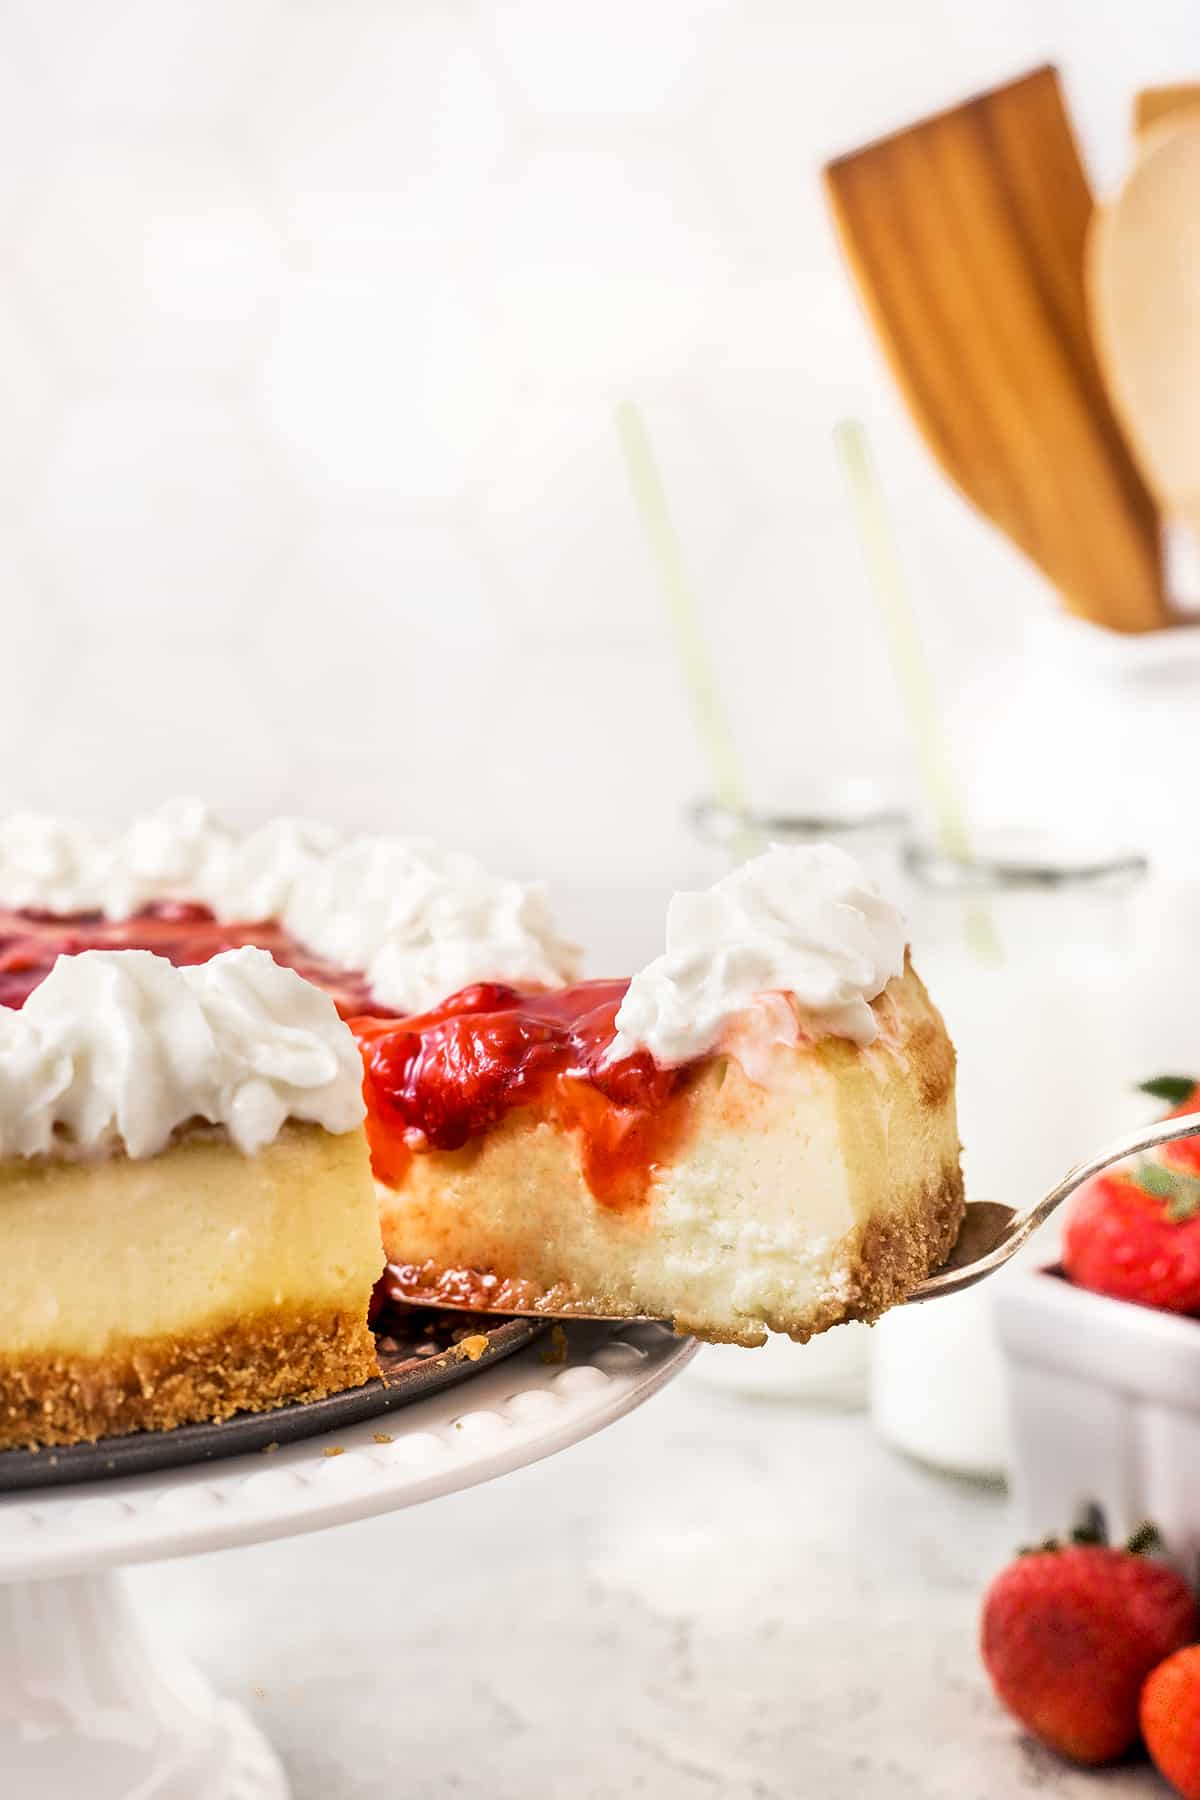 Taking a slice of cheesecake